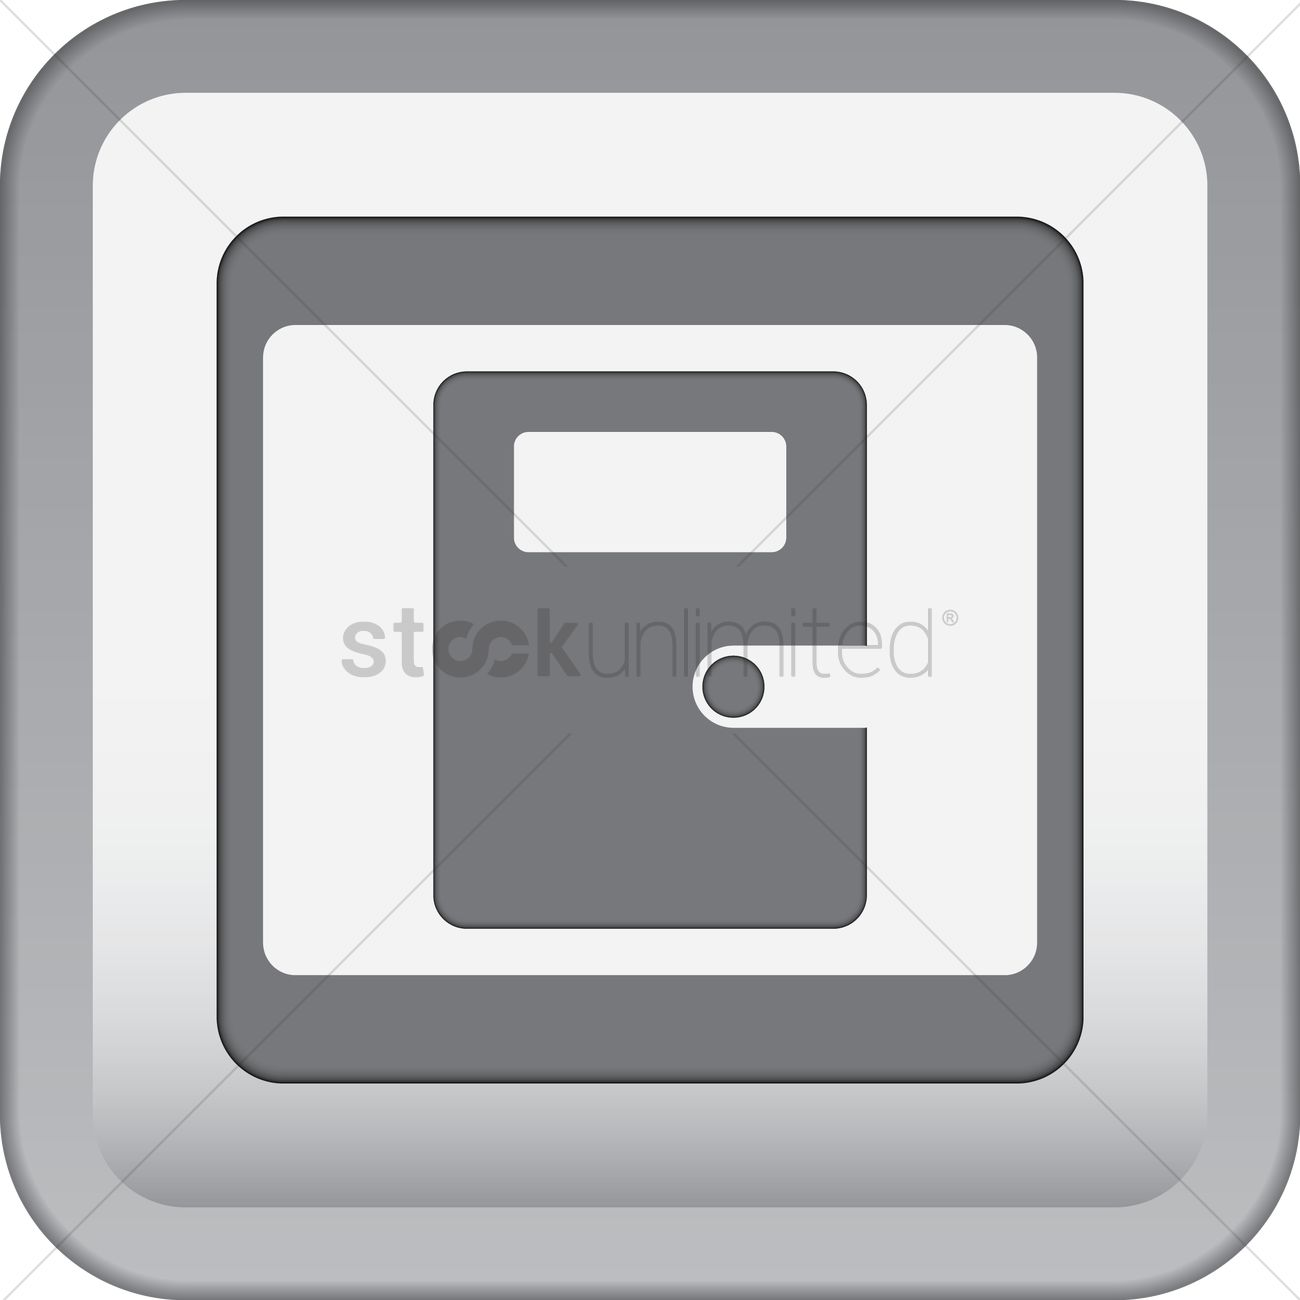 address book icon vector image 1632451 stockunlimited